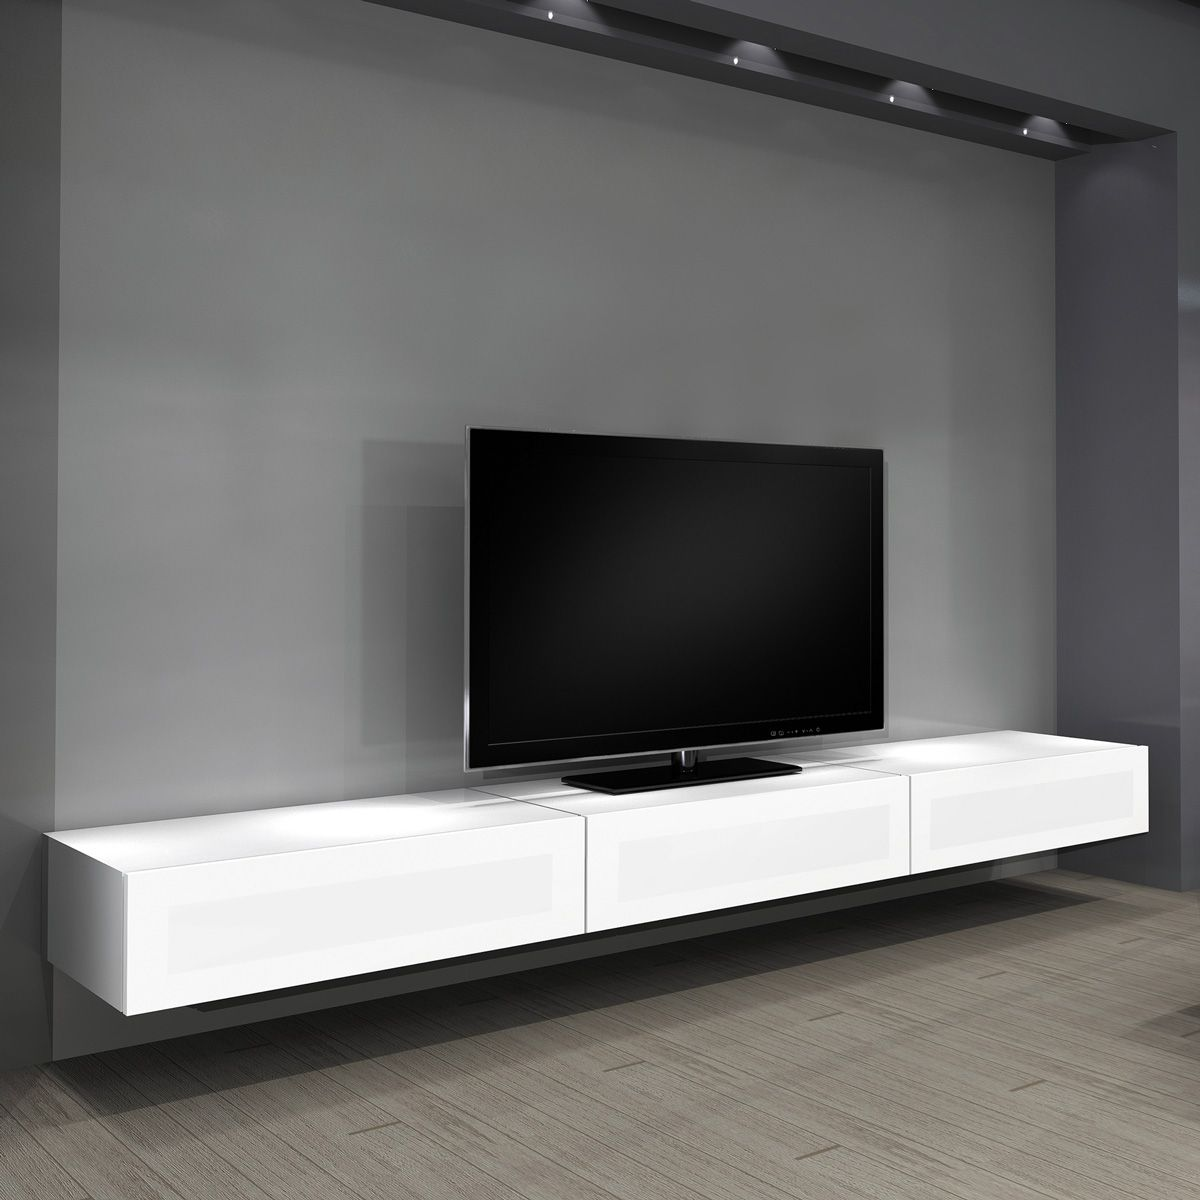 Simple Modern Floating Entertainment Tv Cabinet With Gray